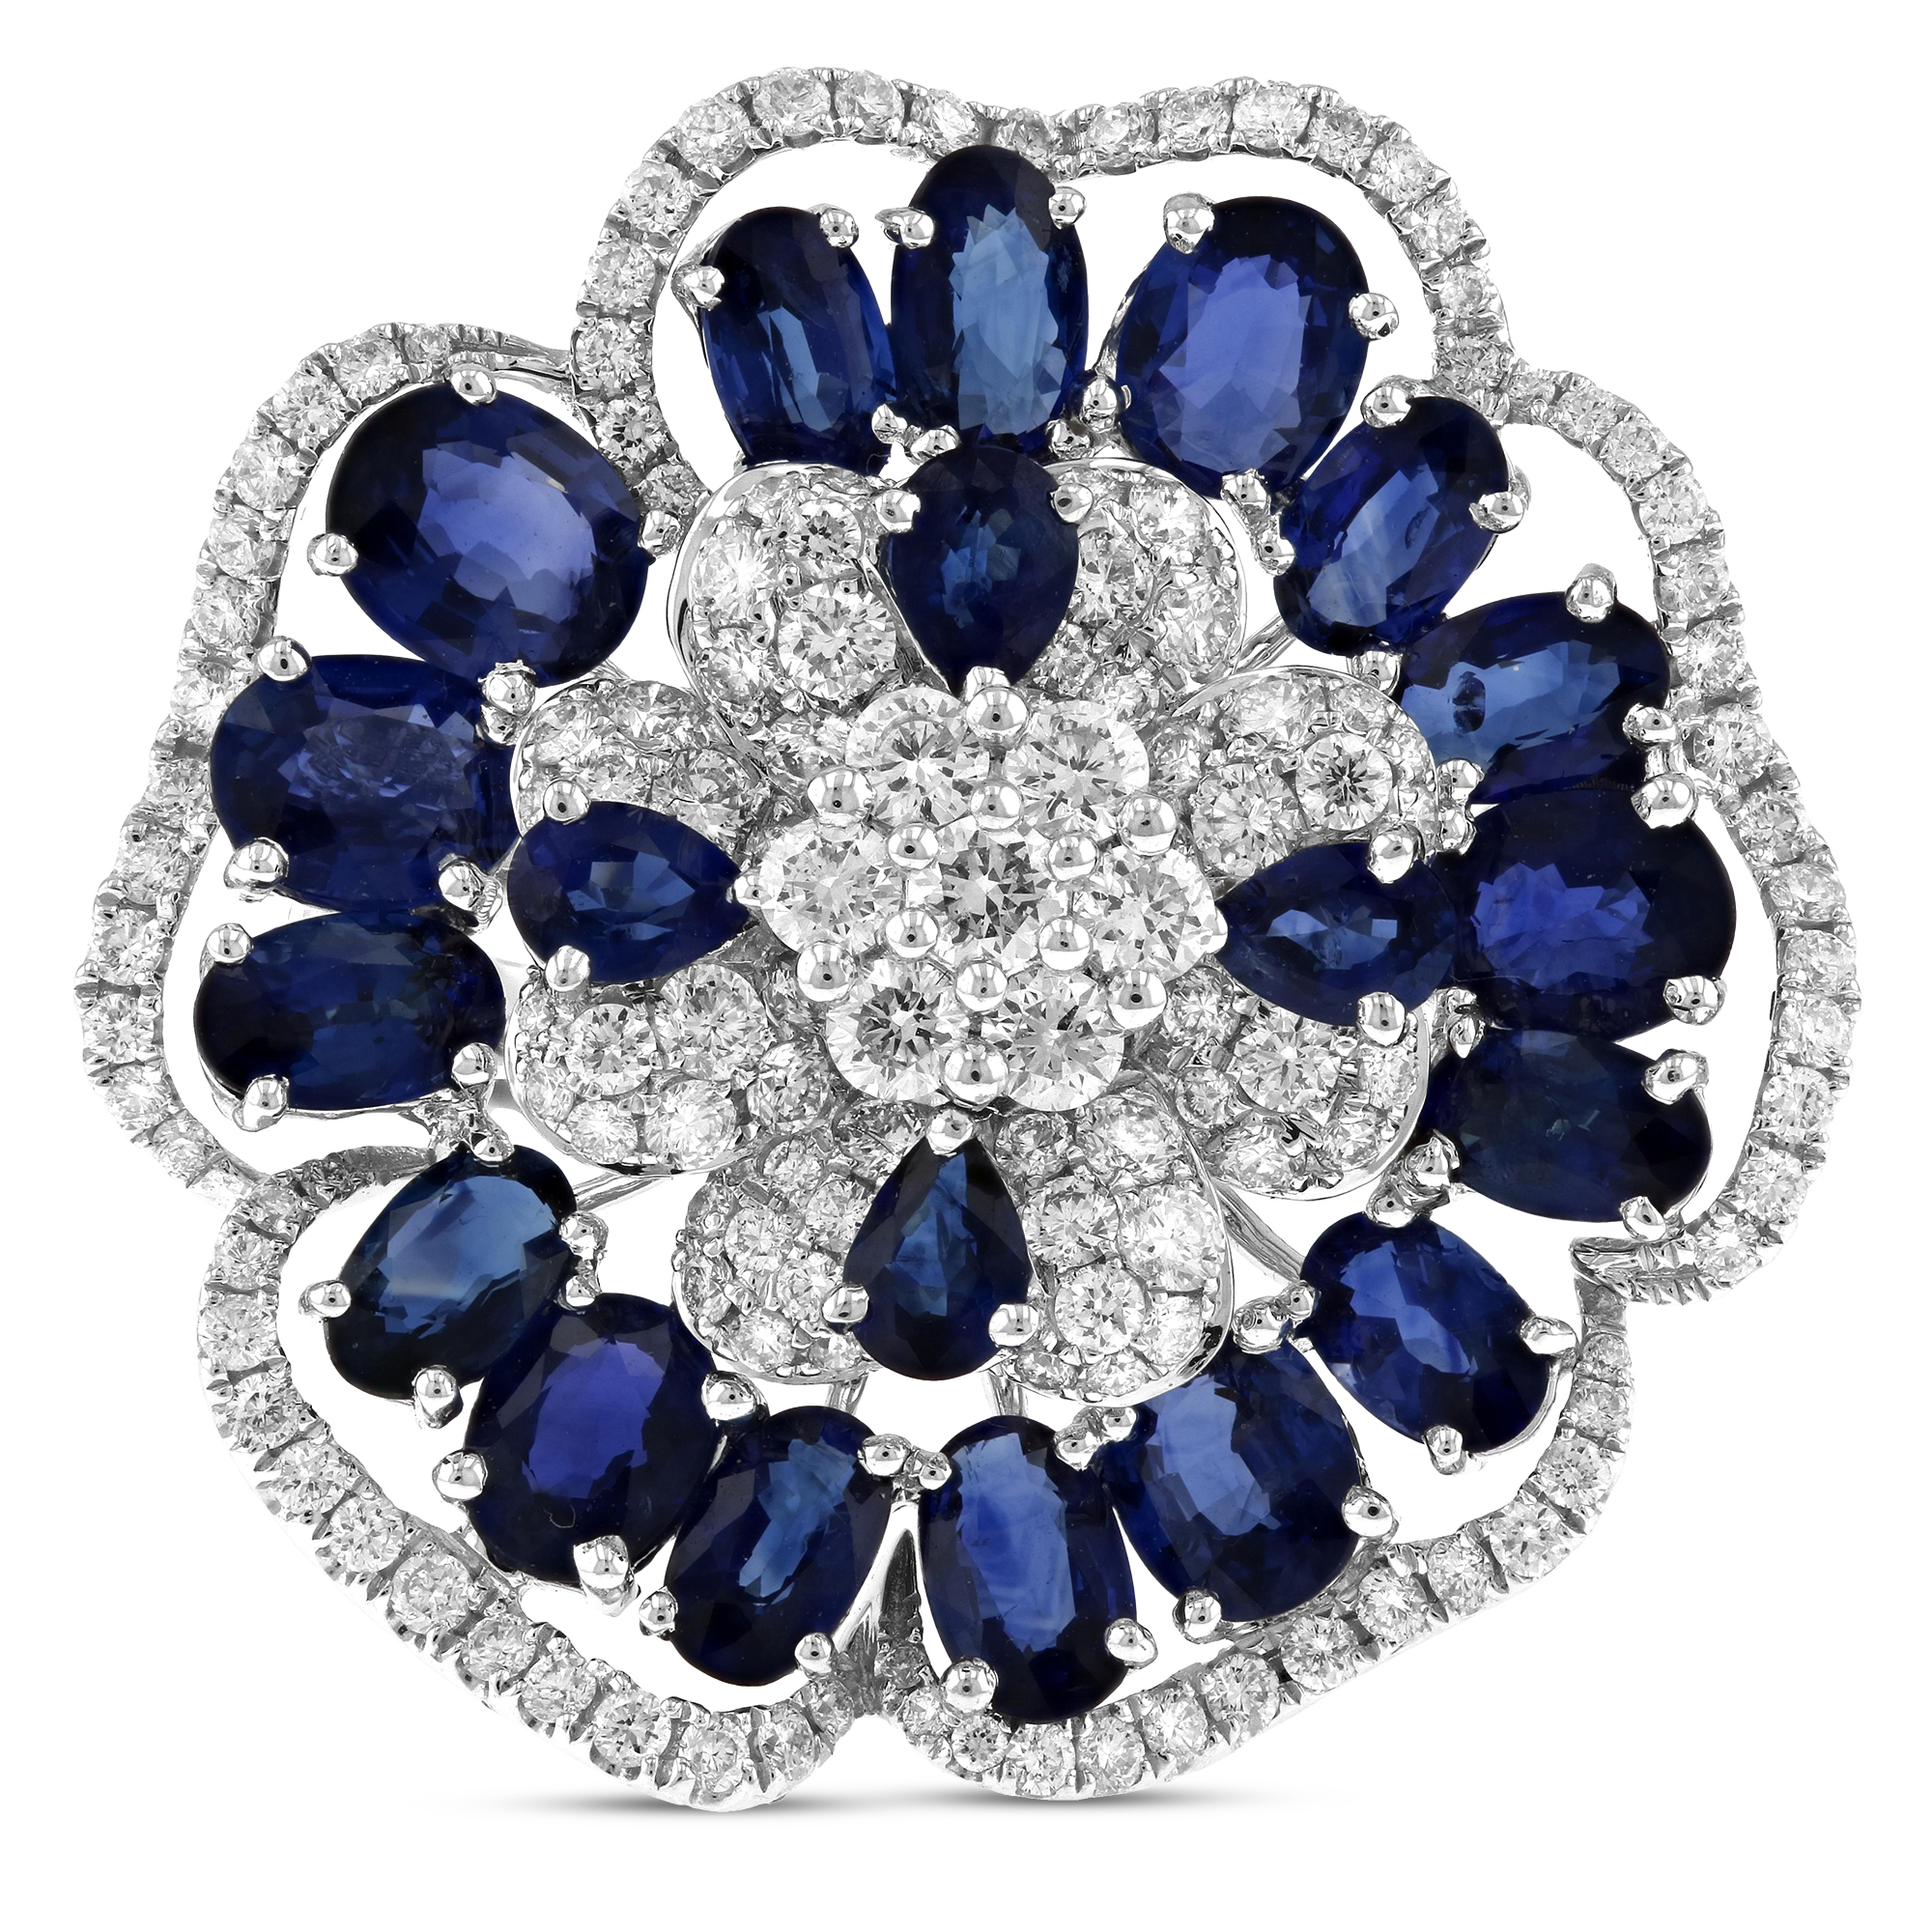 View 7.86ctw Diamond and Sapphire Ring in 18k White Gold